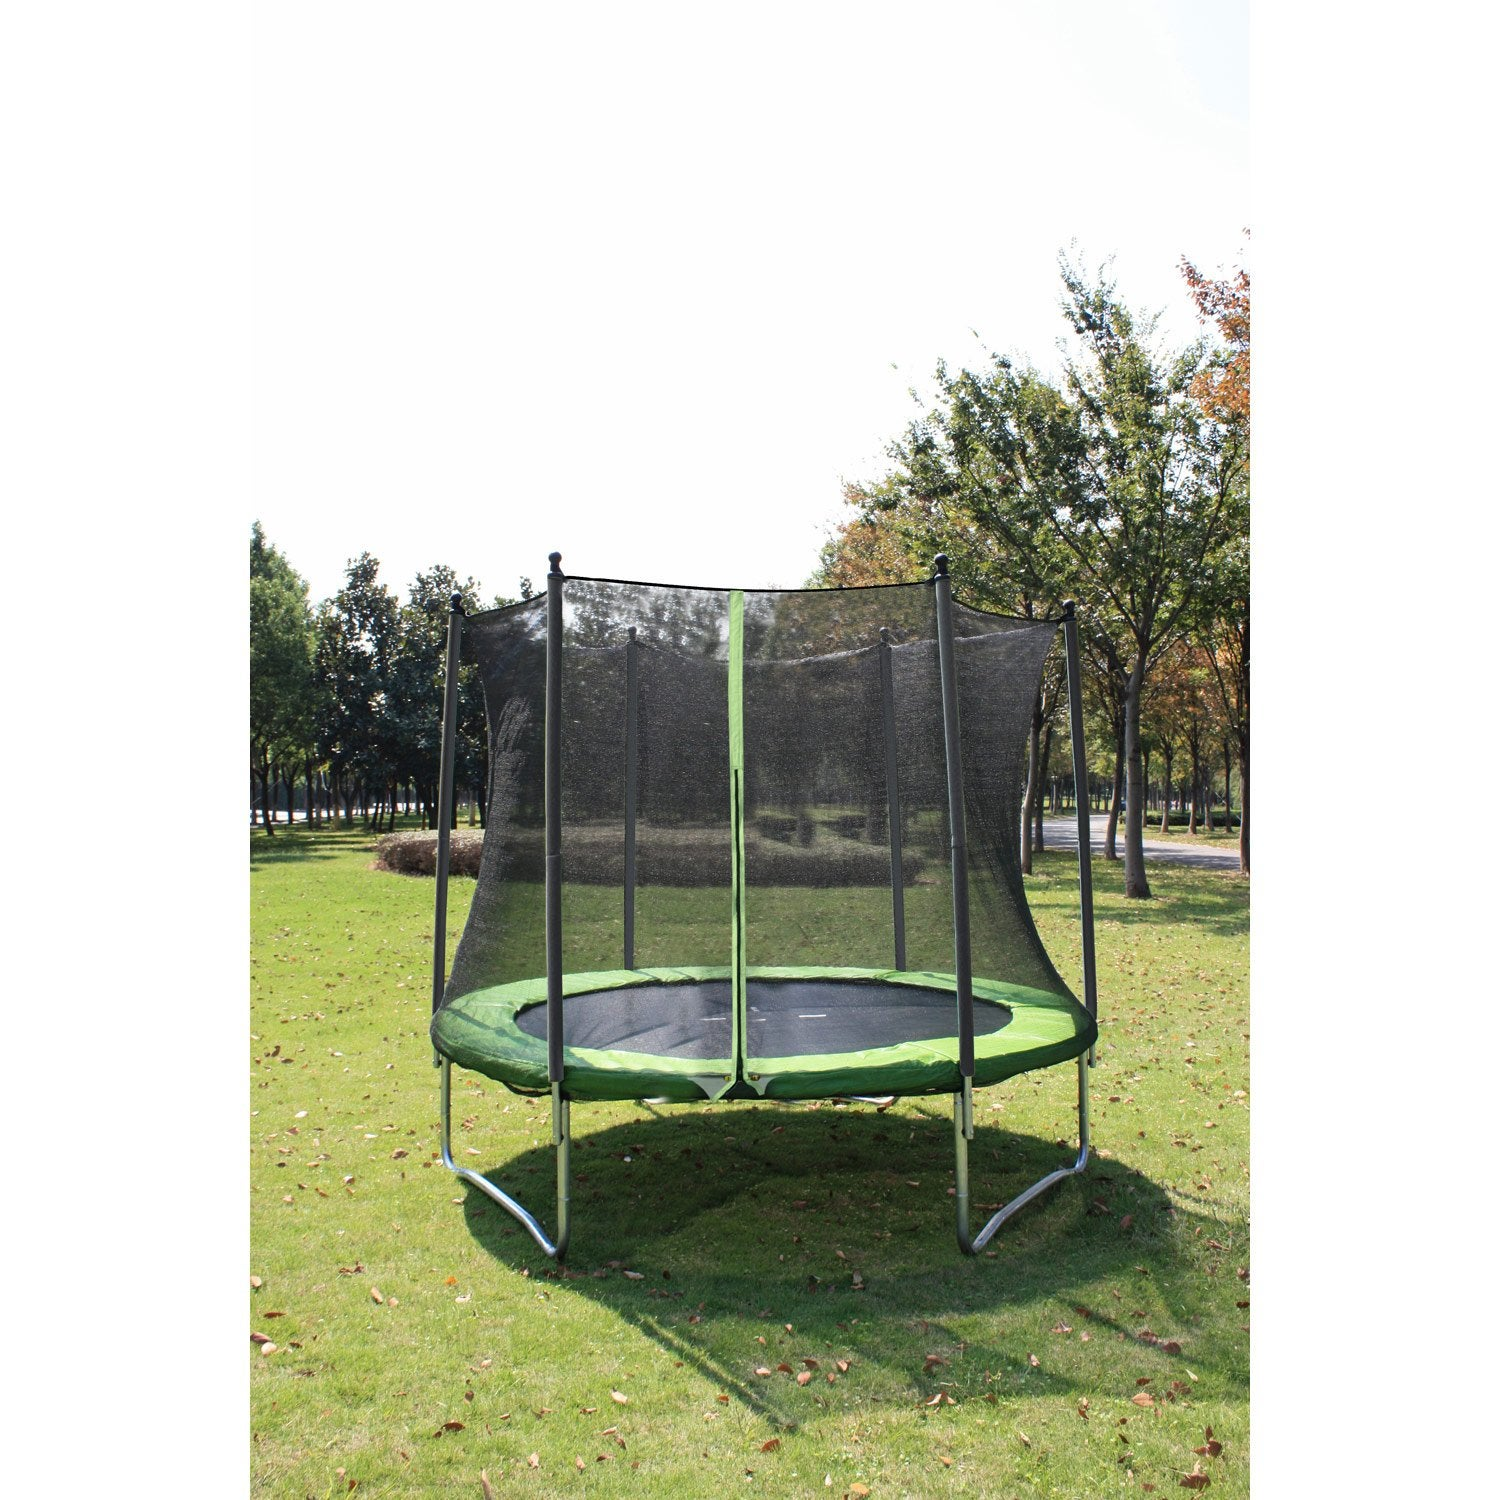 trampoline diam 305 cm noir leroy merlin. Black Bedroom Furniture Sets. Home Design Ideas